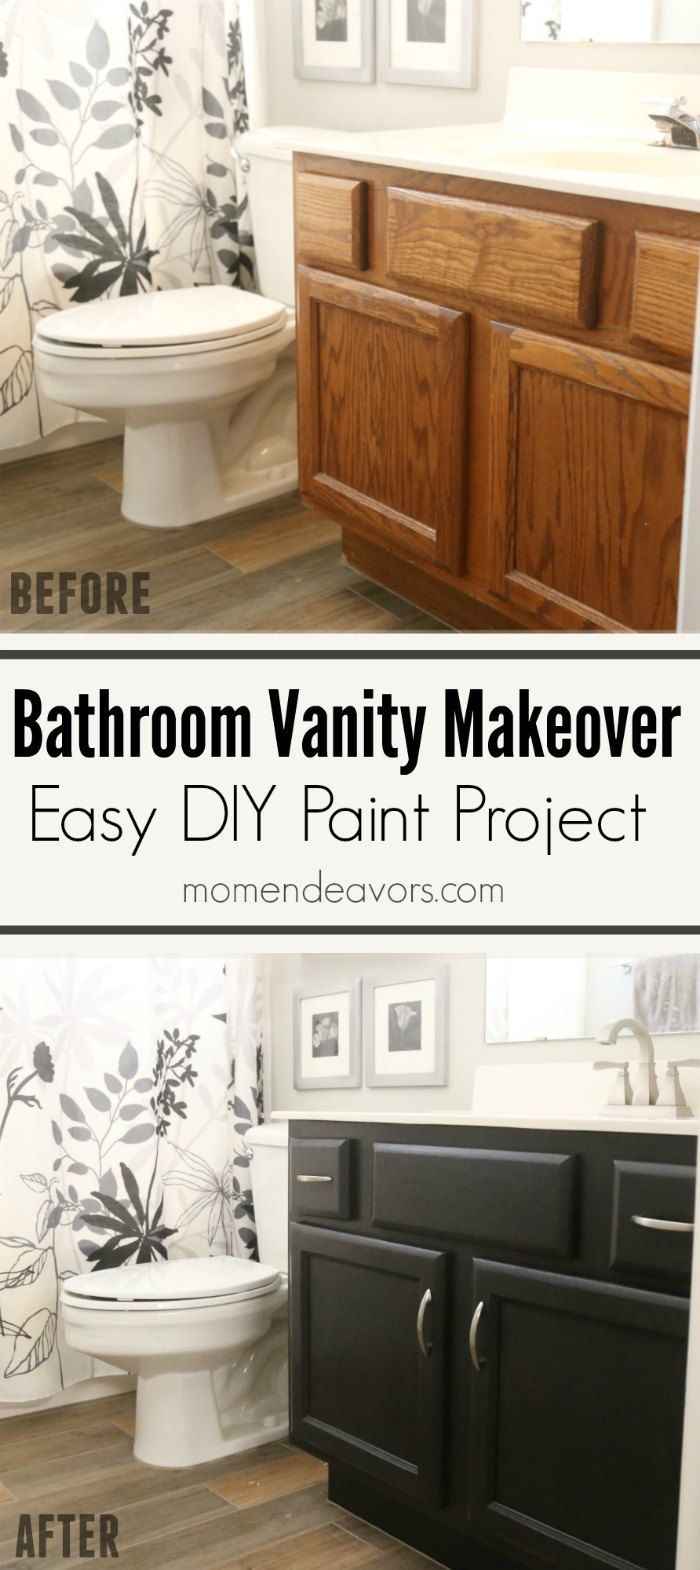 Bathroom Vanity Makeover – Easy Diy Home Paint Project Paint